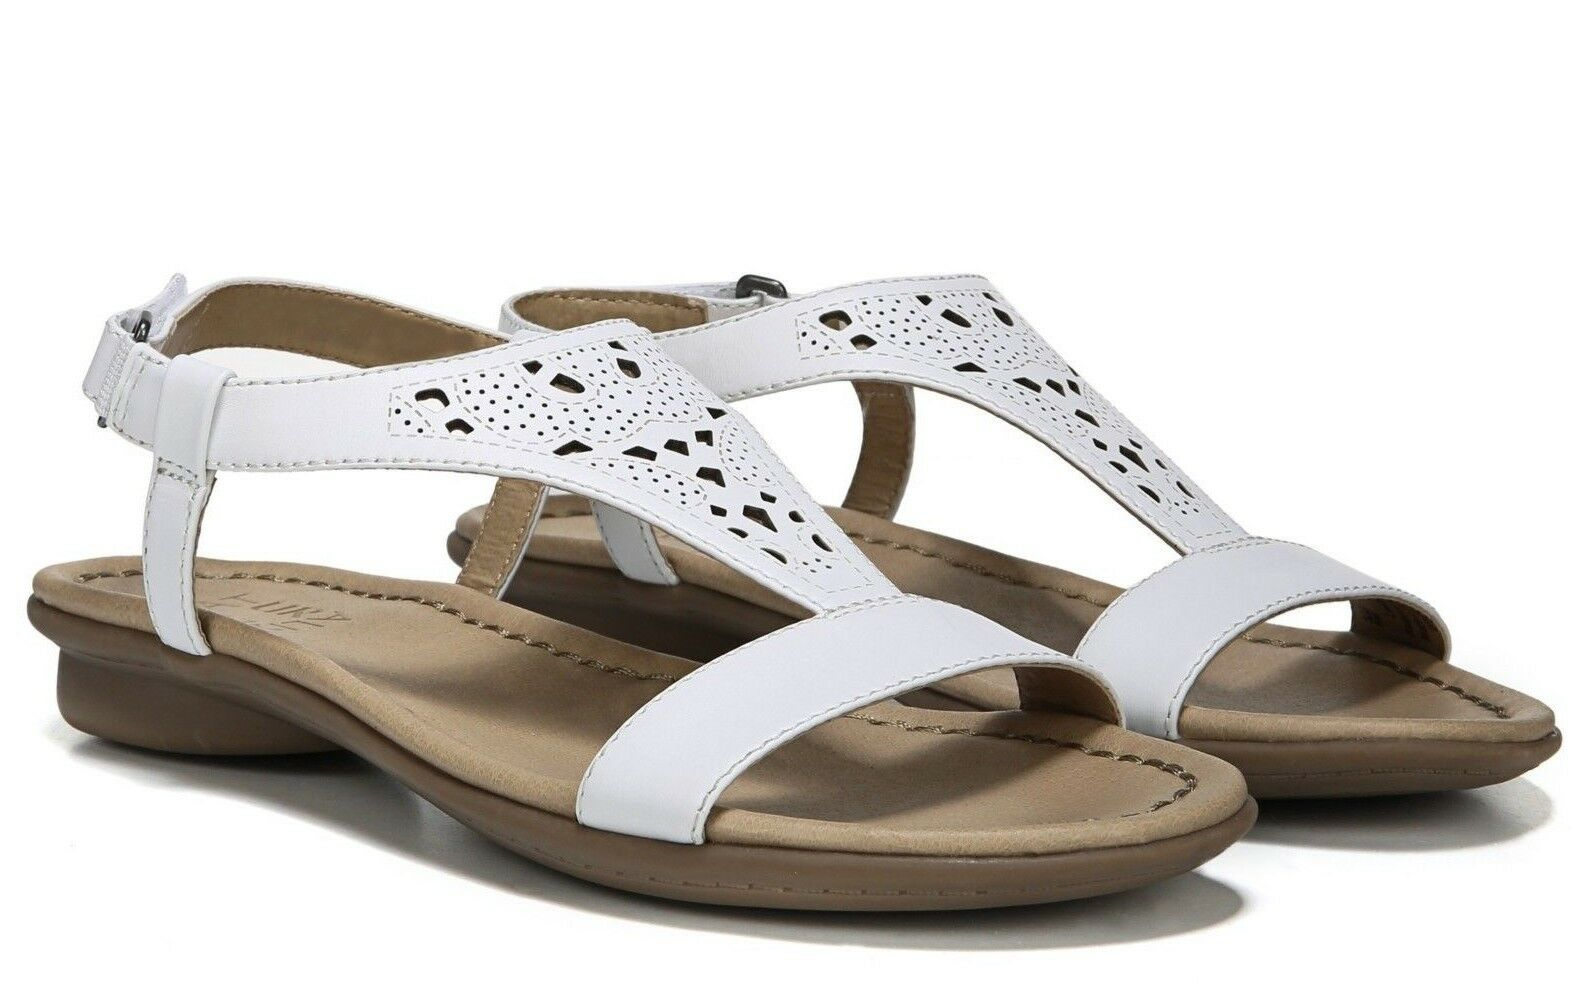 Naturalizer Windham Womens Size 8.5M White Leather Perforated Comfort Sandal New